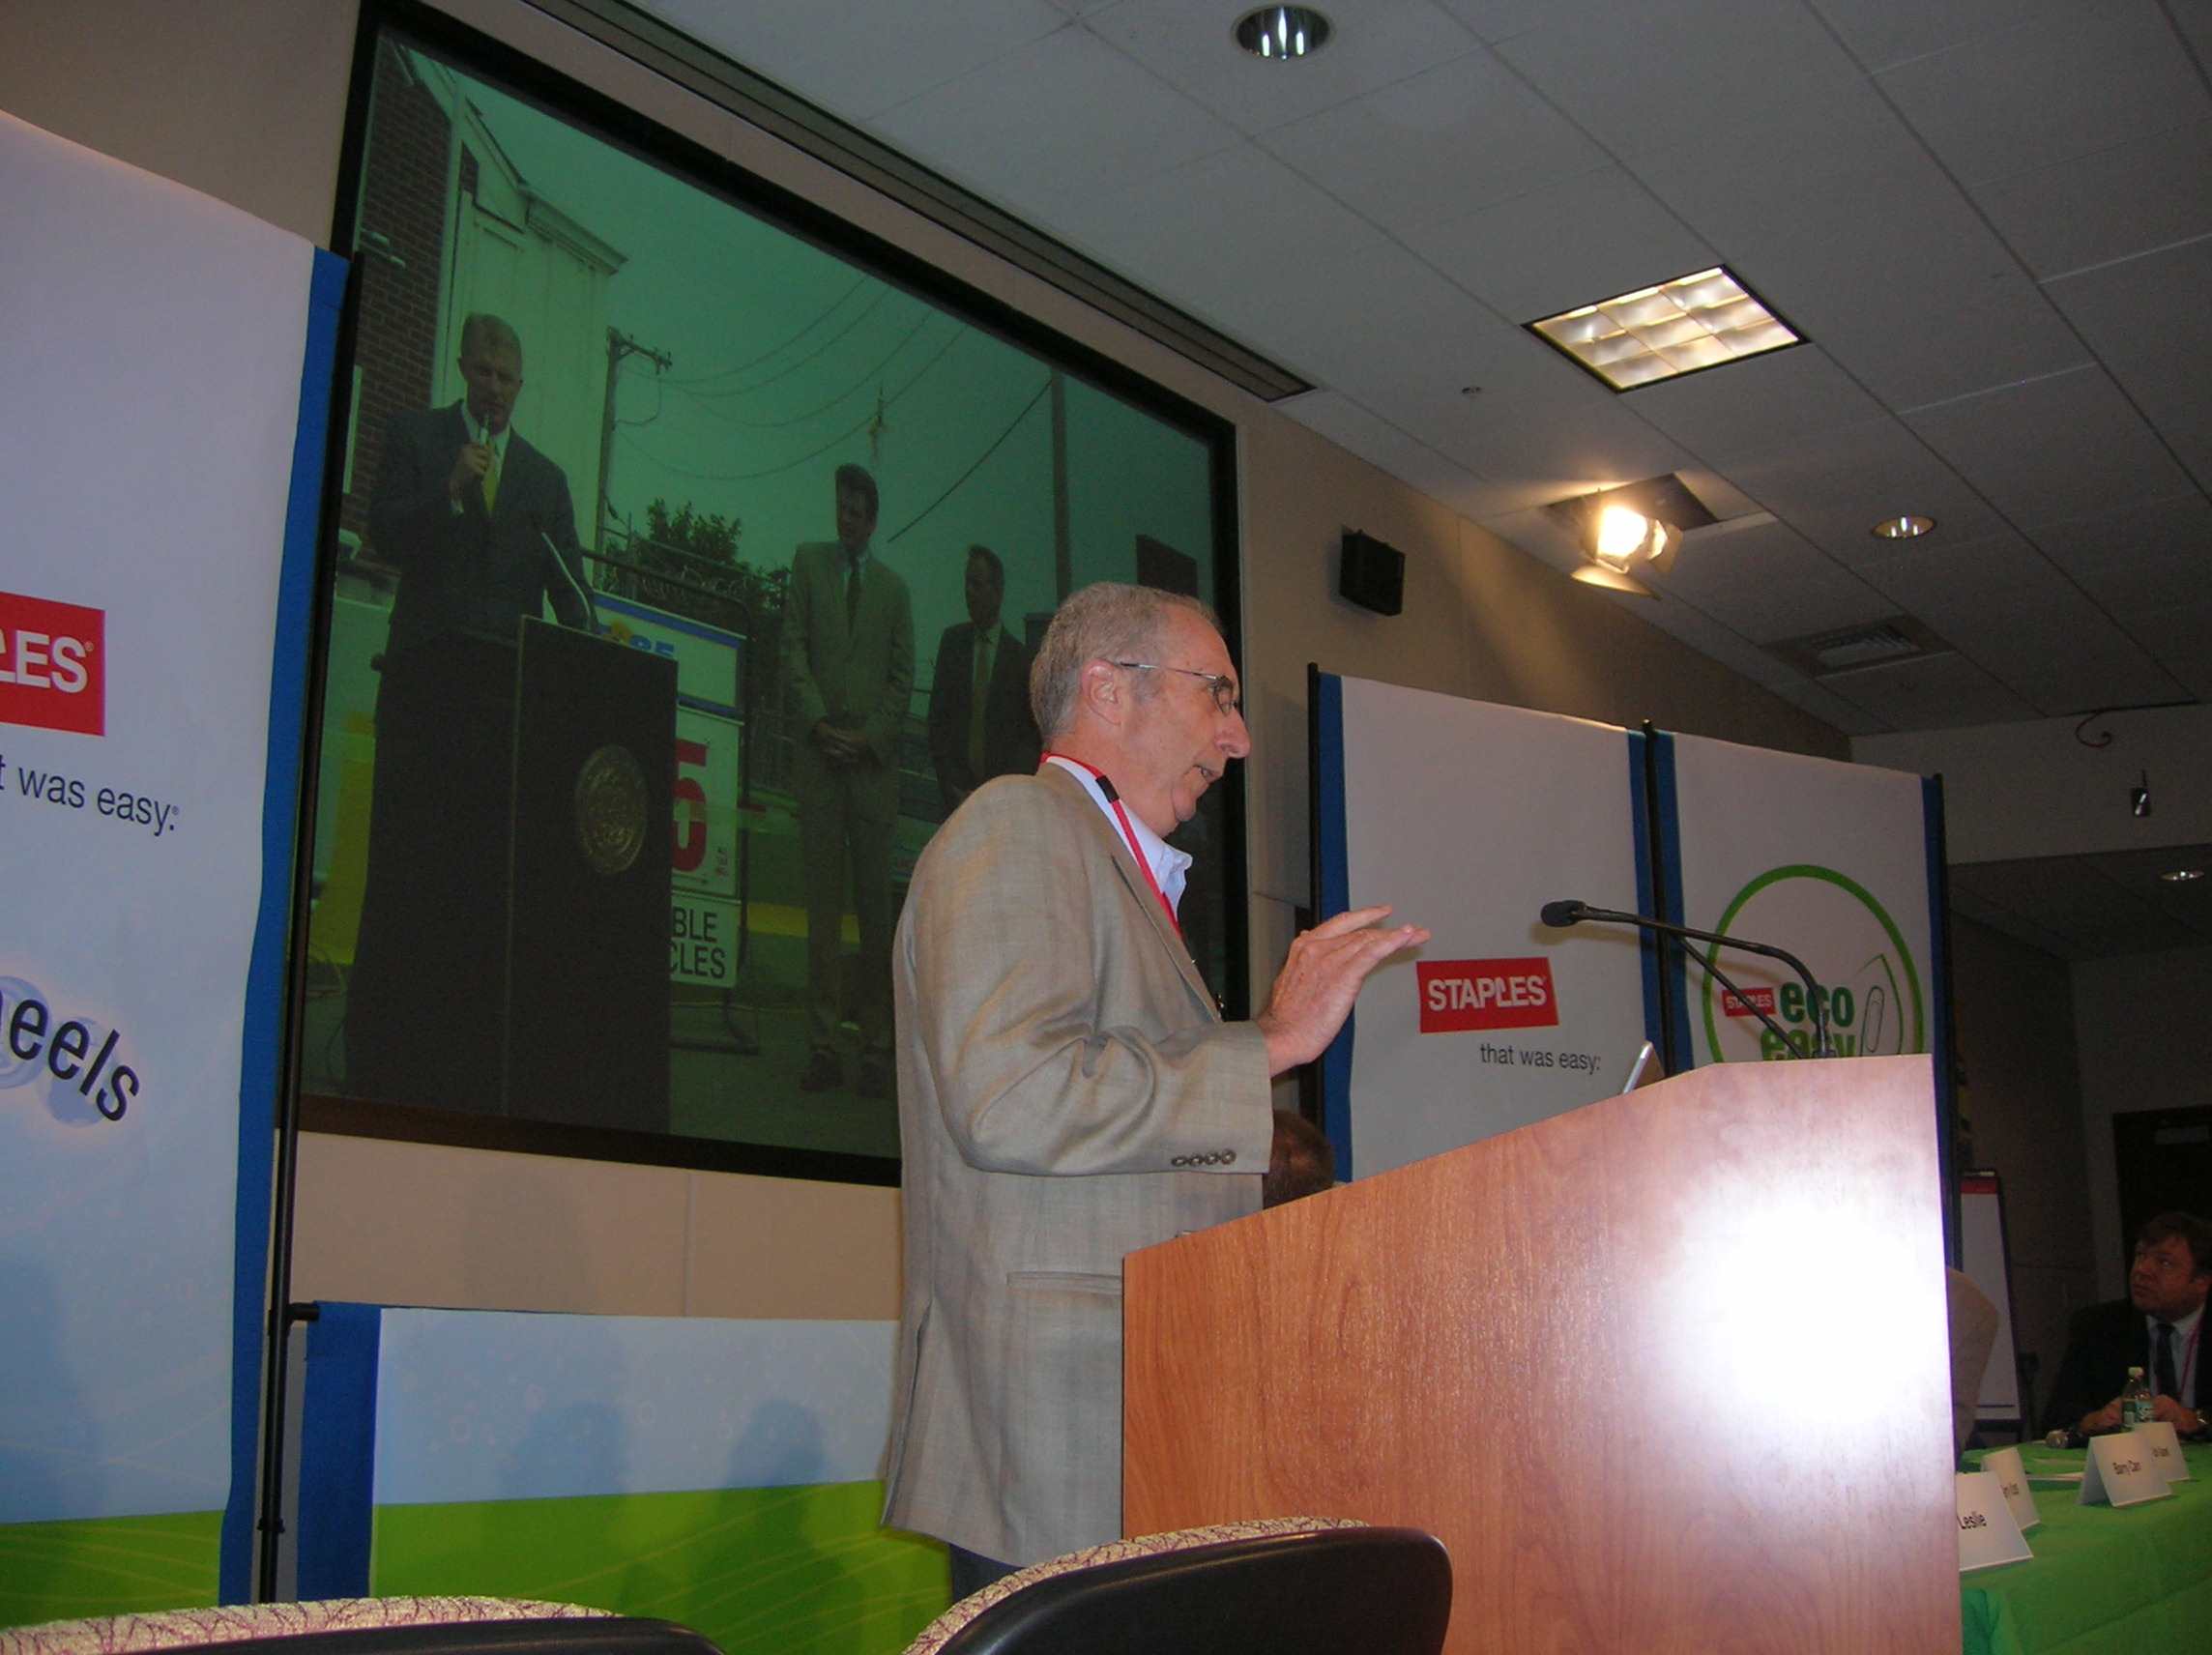 Man in a suit standing at a podium giving a speech